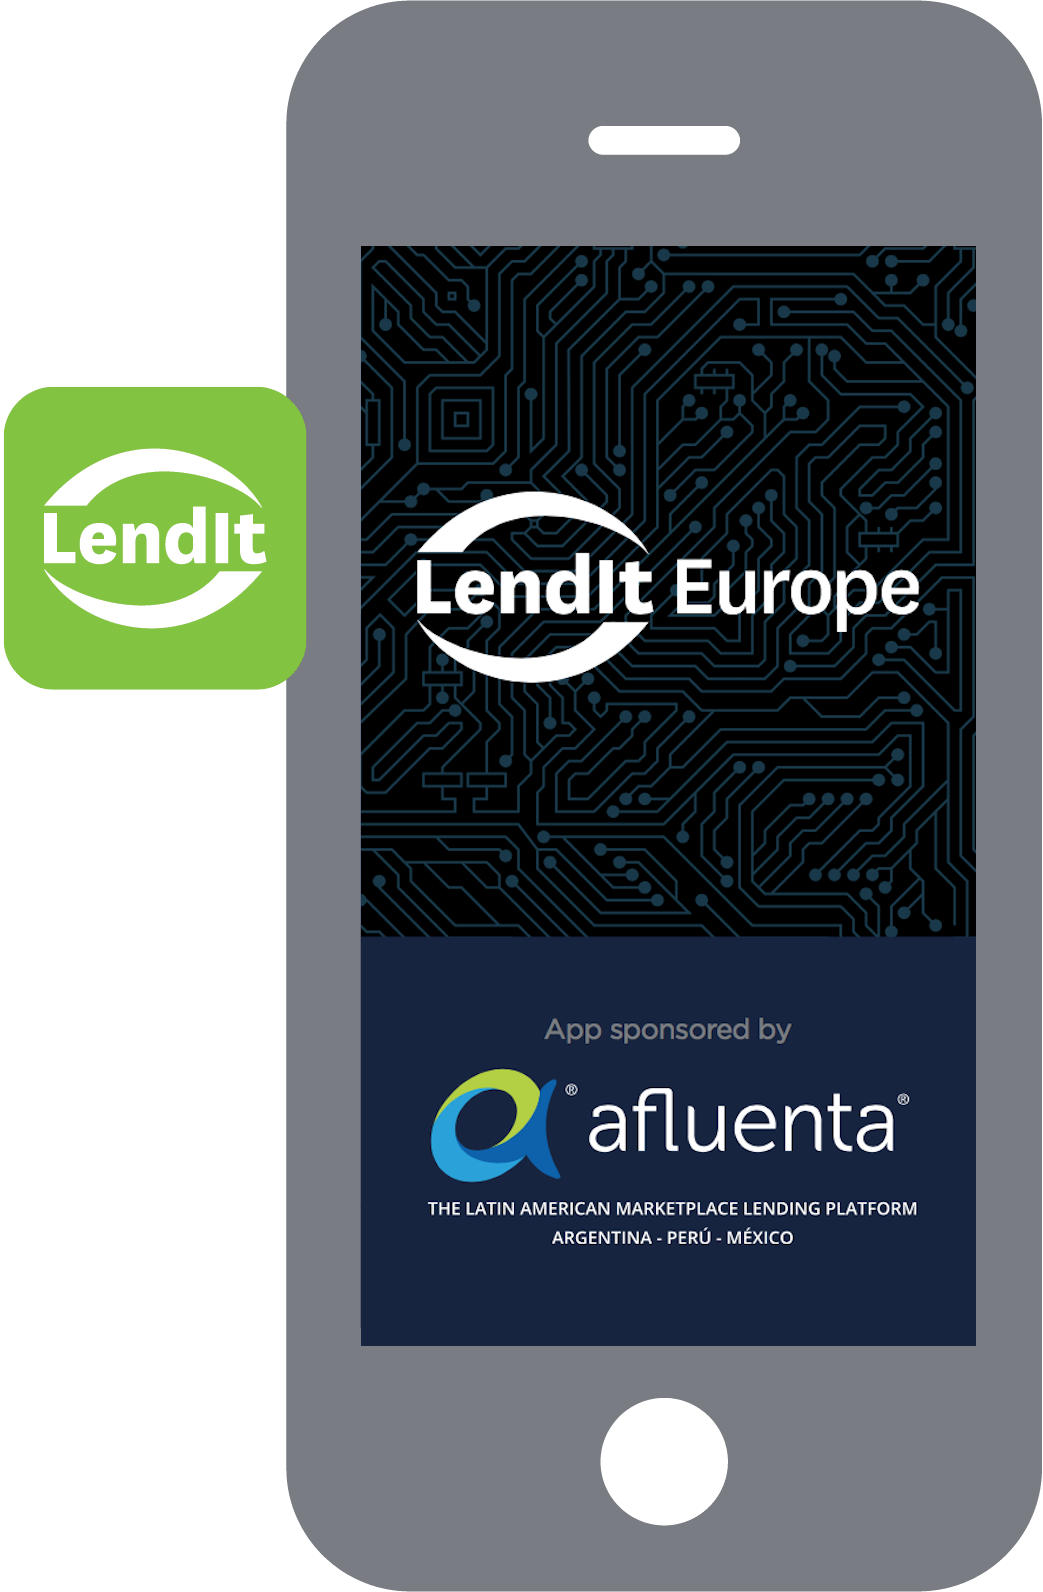 lendit app sponsored by afluenta